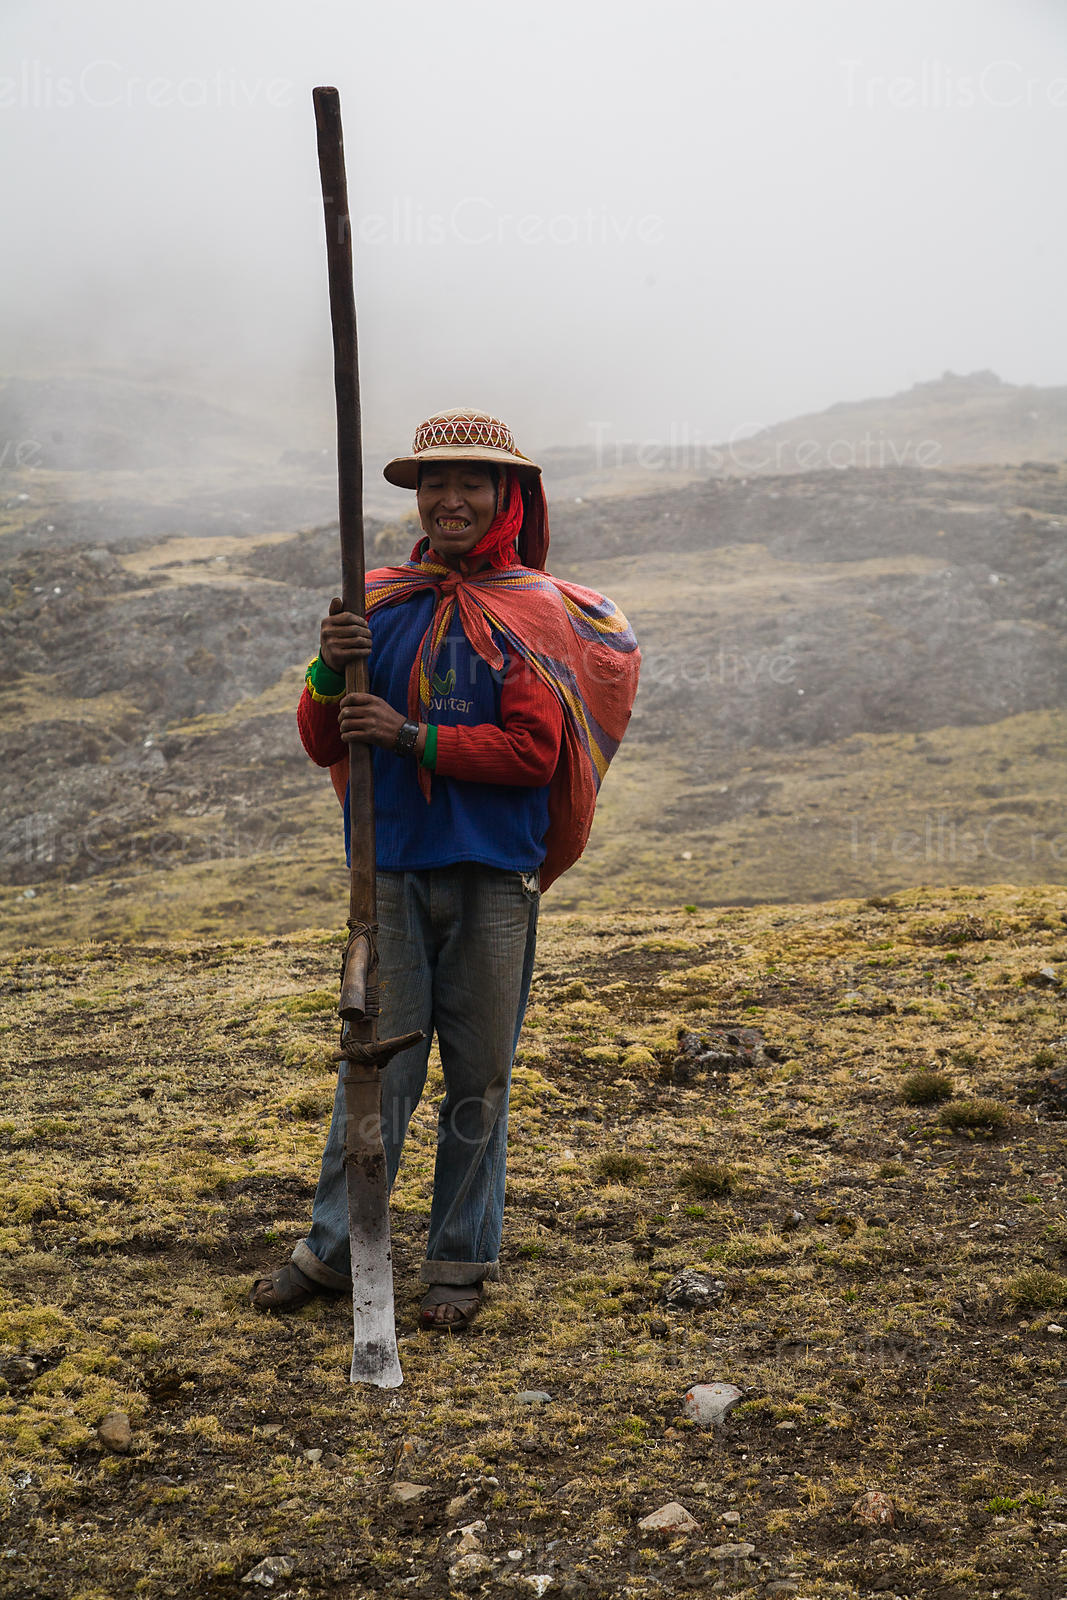 Kechwa farmer returning from the fields, Lares Trek, Andes Mountains, Peru